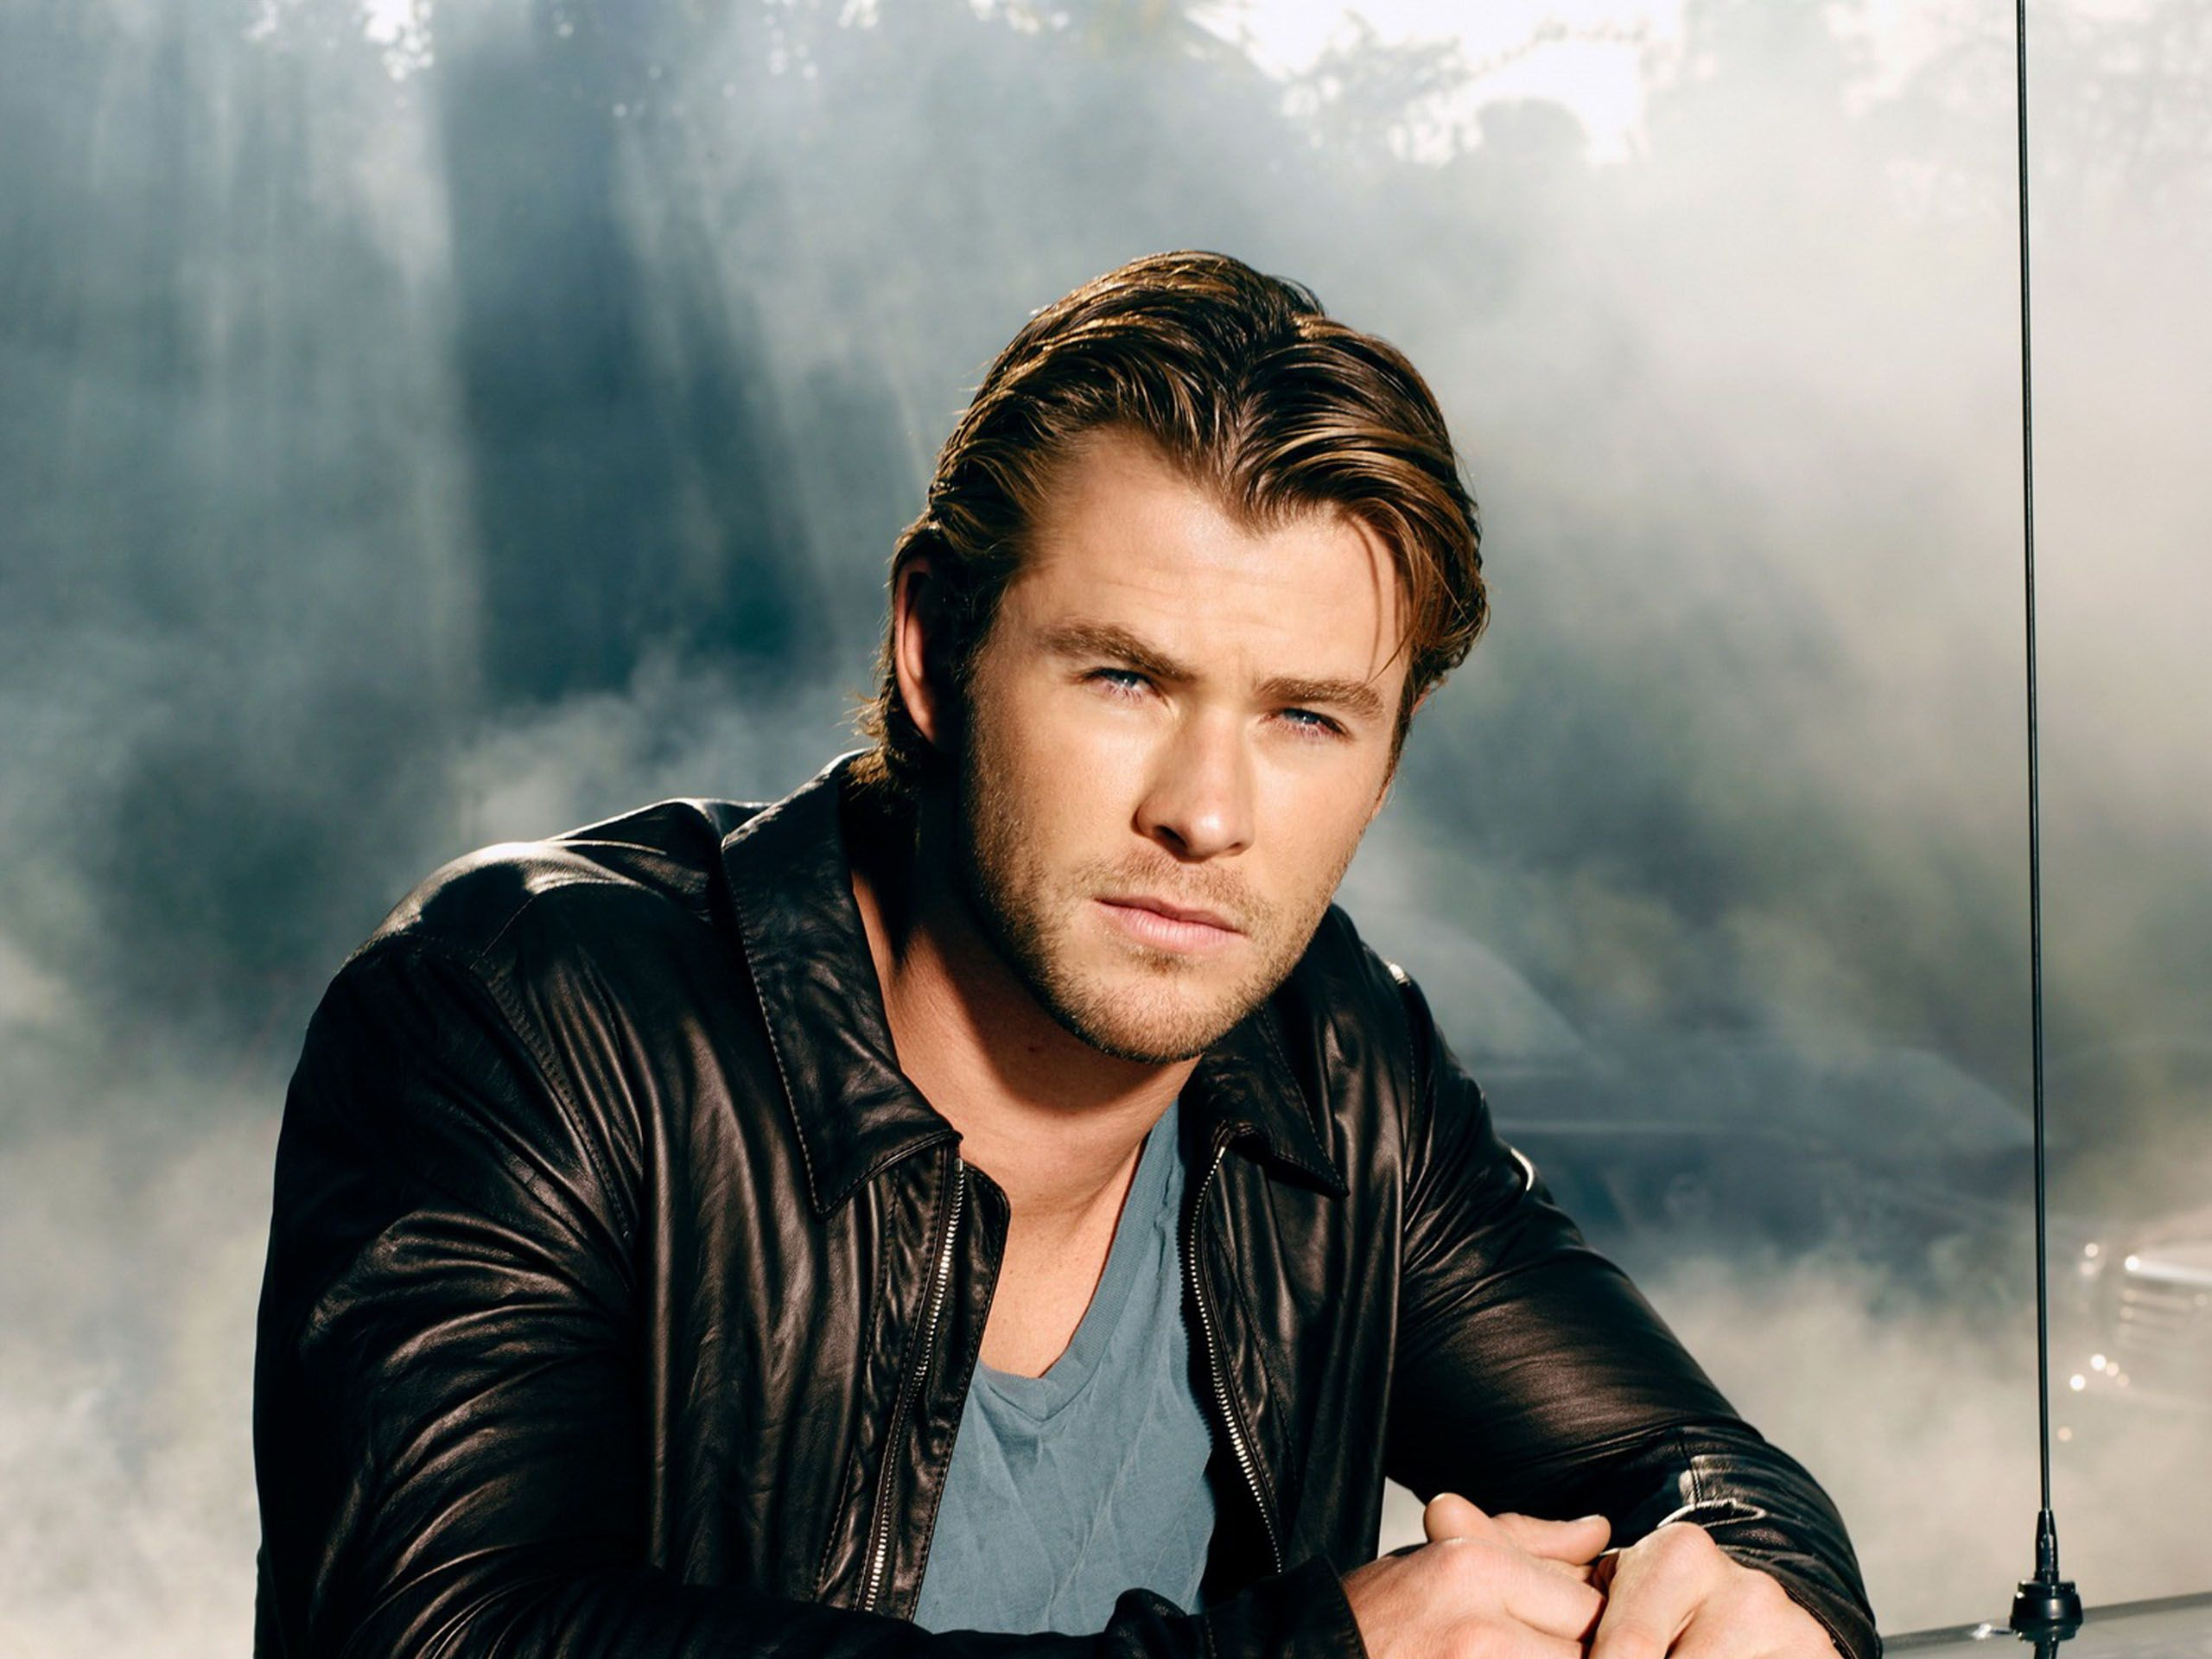 Chris-Hemsworth-036.jpg